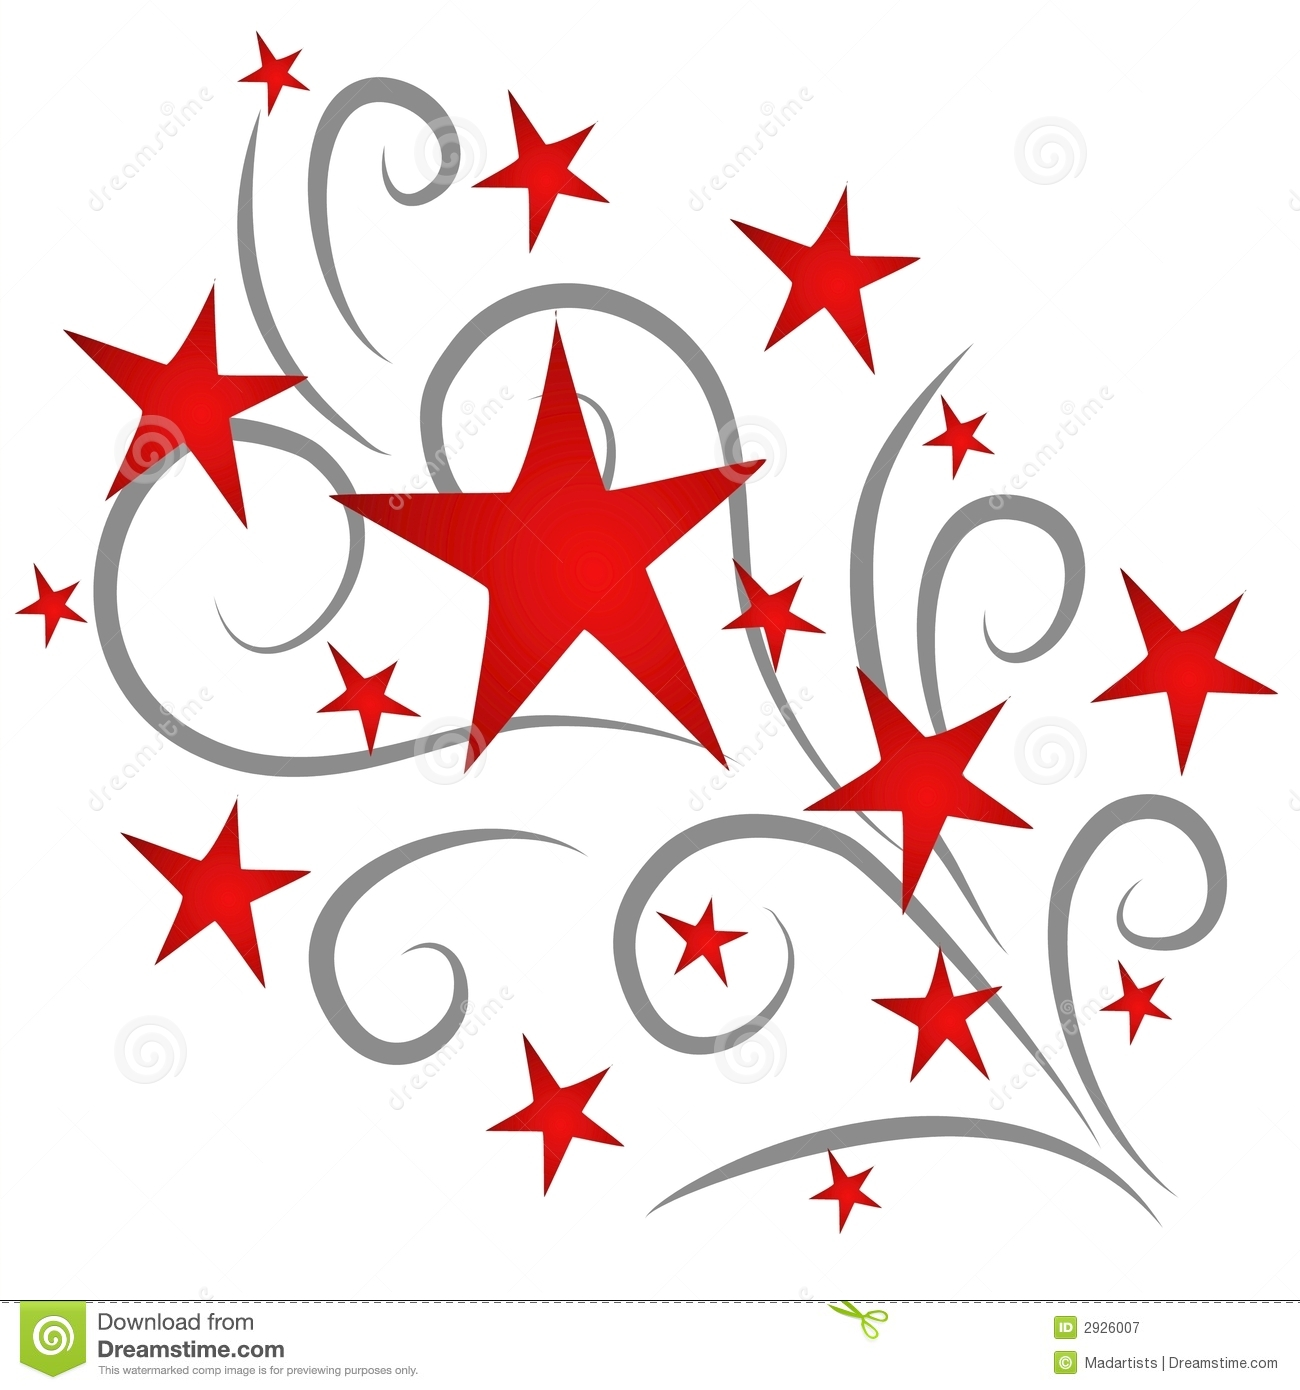 Shooting Star clipart star explosion Stars THE Image MOON Red